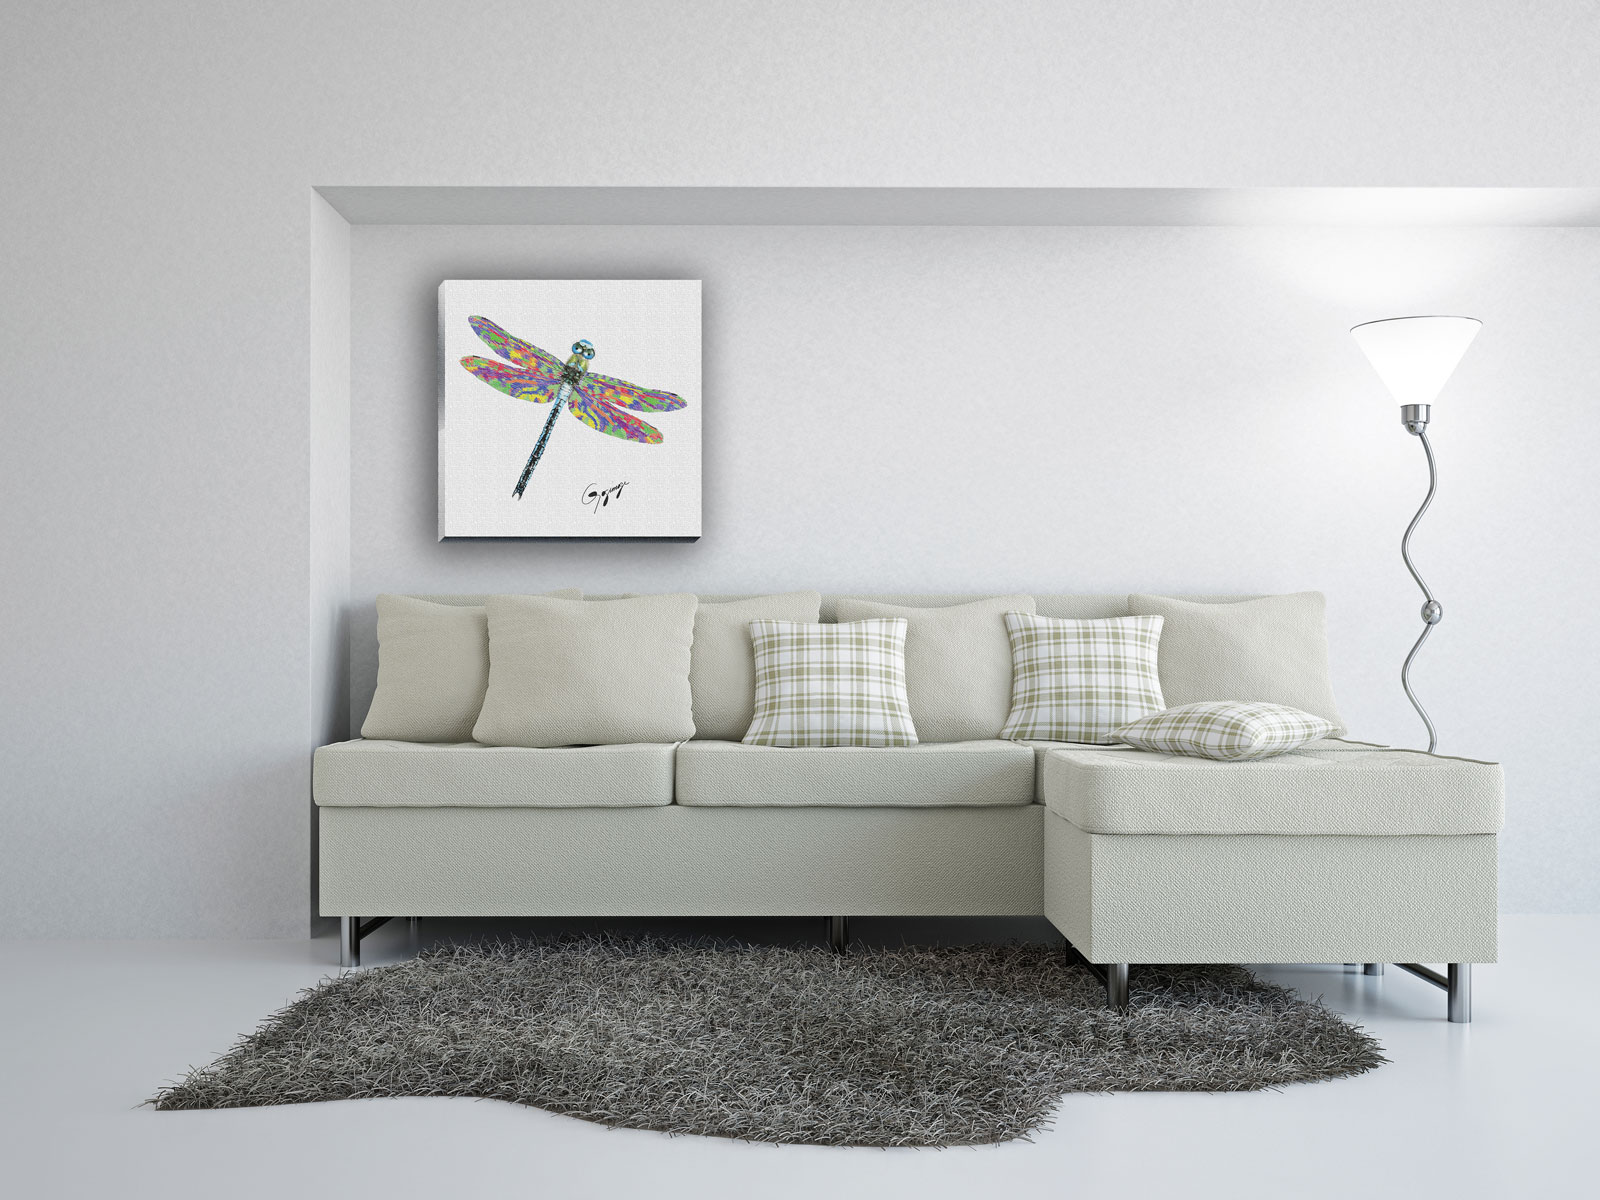 Dragonfly Nursery Wall Decor : Dragonfly wall art decor bedroom design